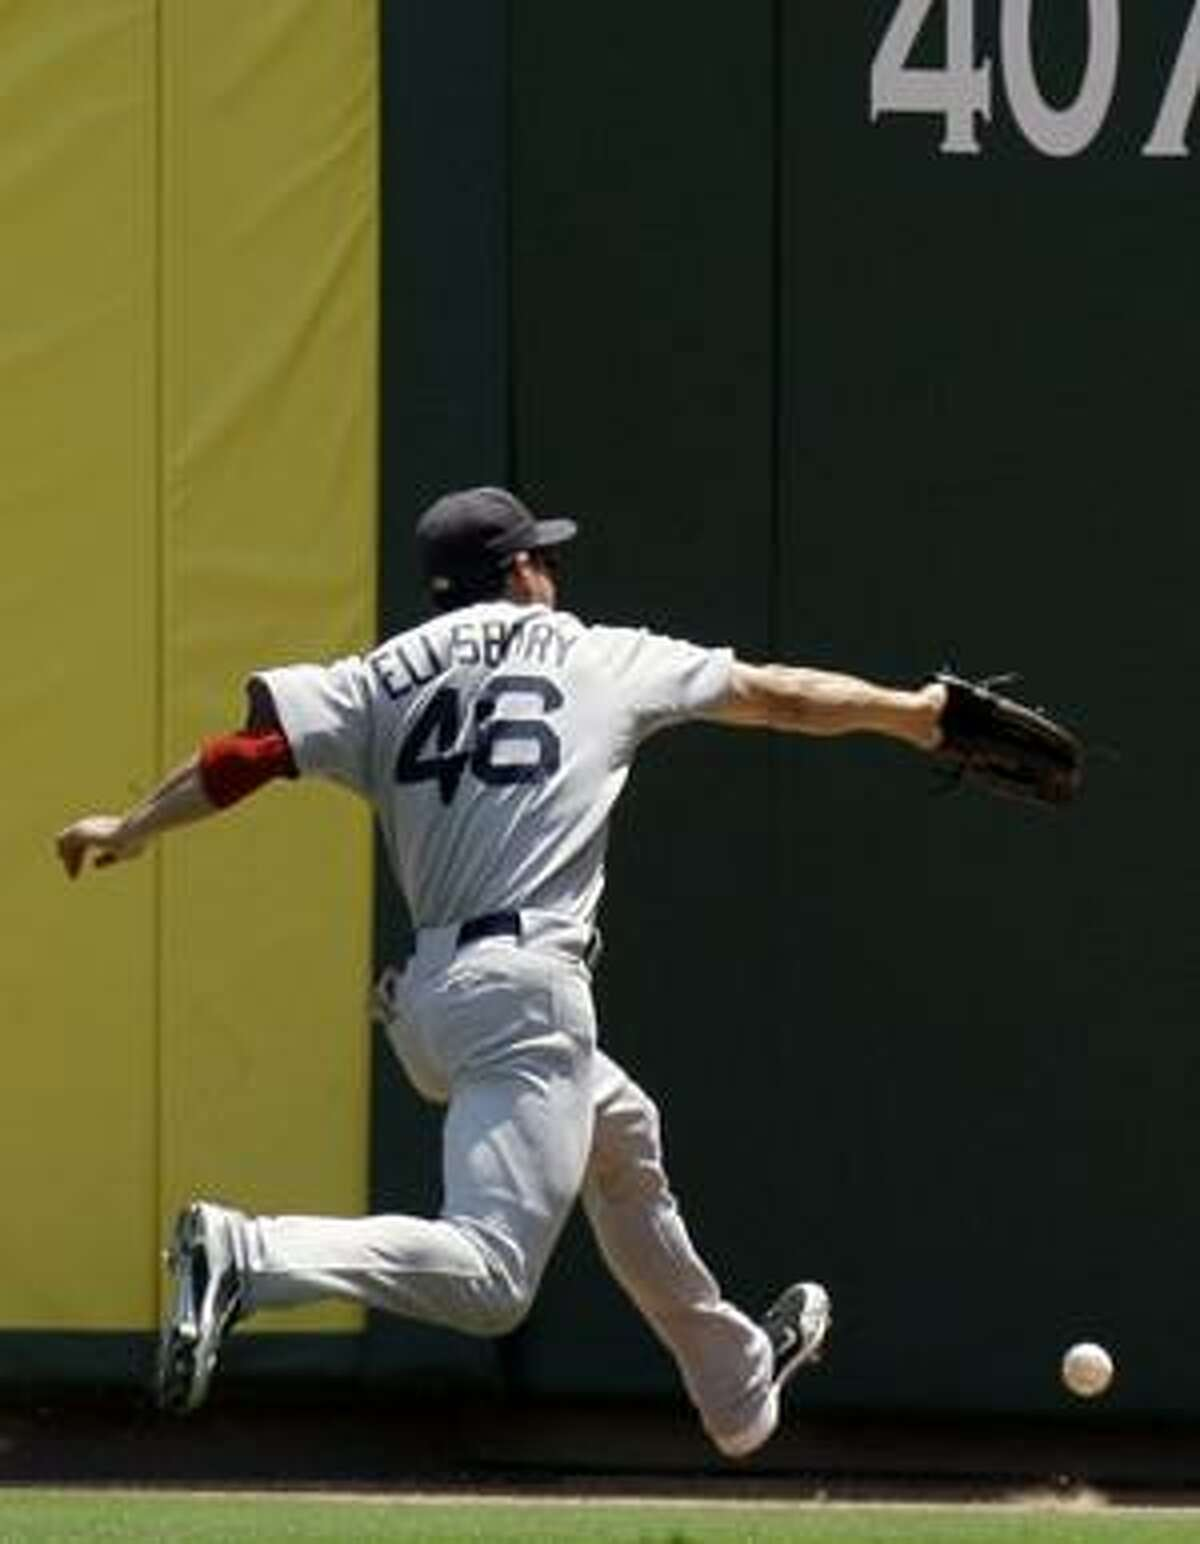 AP Boston Red Sox center fielder Jacoby Ellsbury (46) cannot catch a double by Texas Rangers' Elvis Andrus during the second inning Sunday in Arlington, Texas. The Rangers won 4-3.